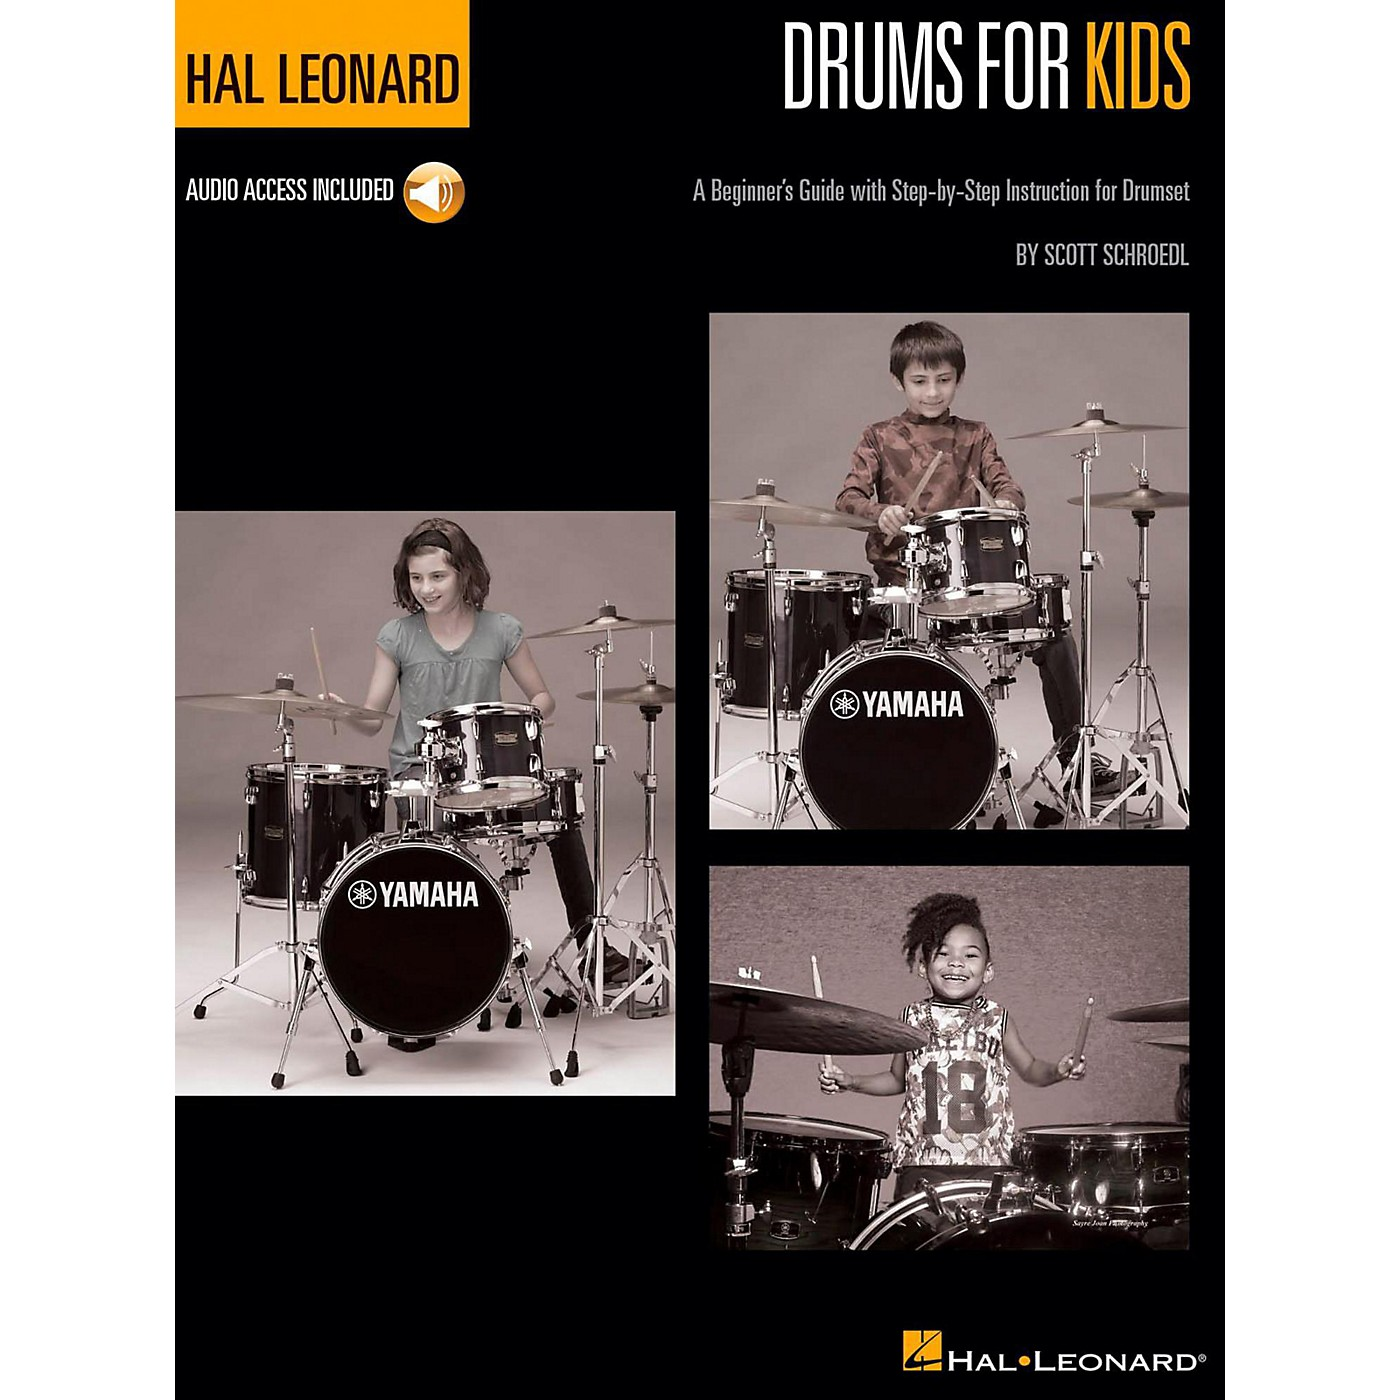 Hal Leonard Hal Leonard Drums for Kids - A Beginner's Guide with Step-by-Step Instruction for Drumset Book/Audio Online thumbnail